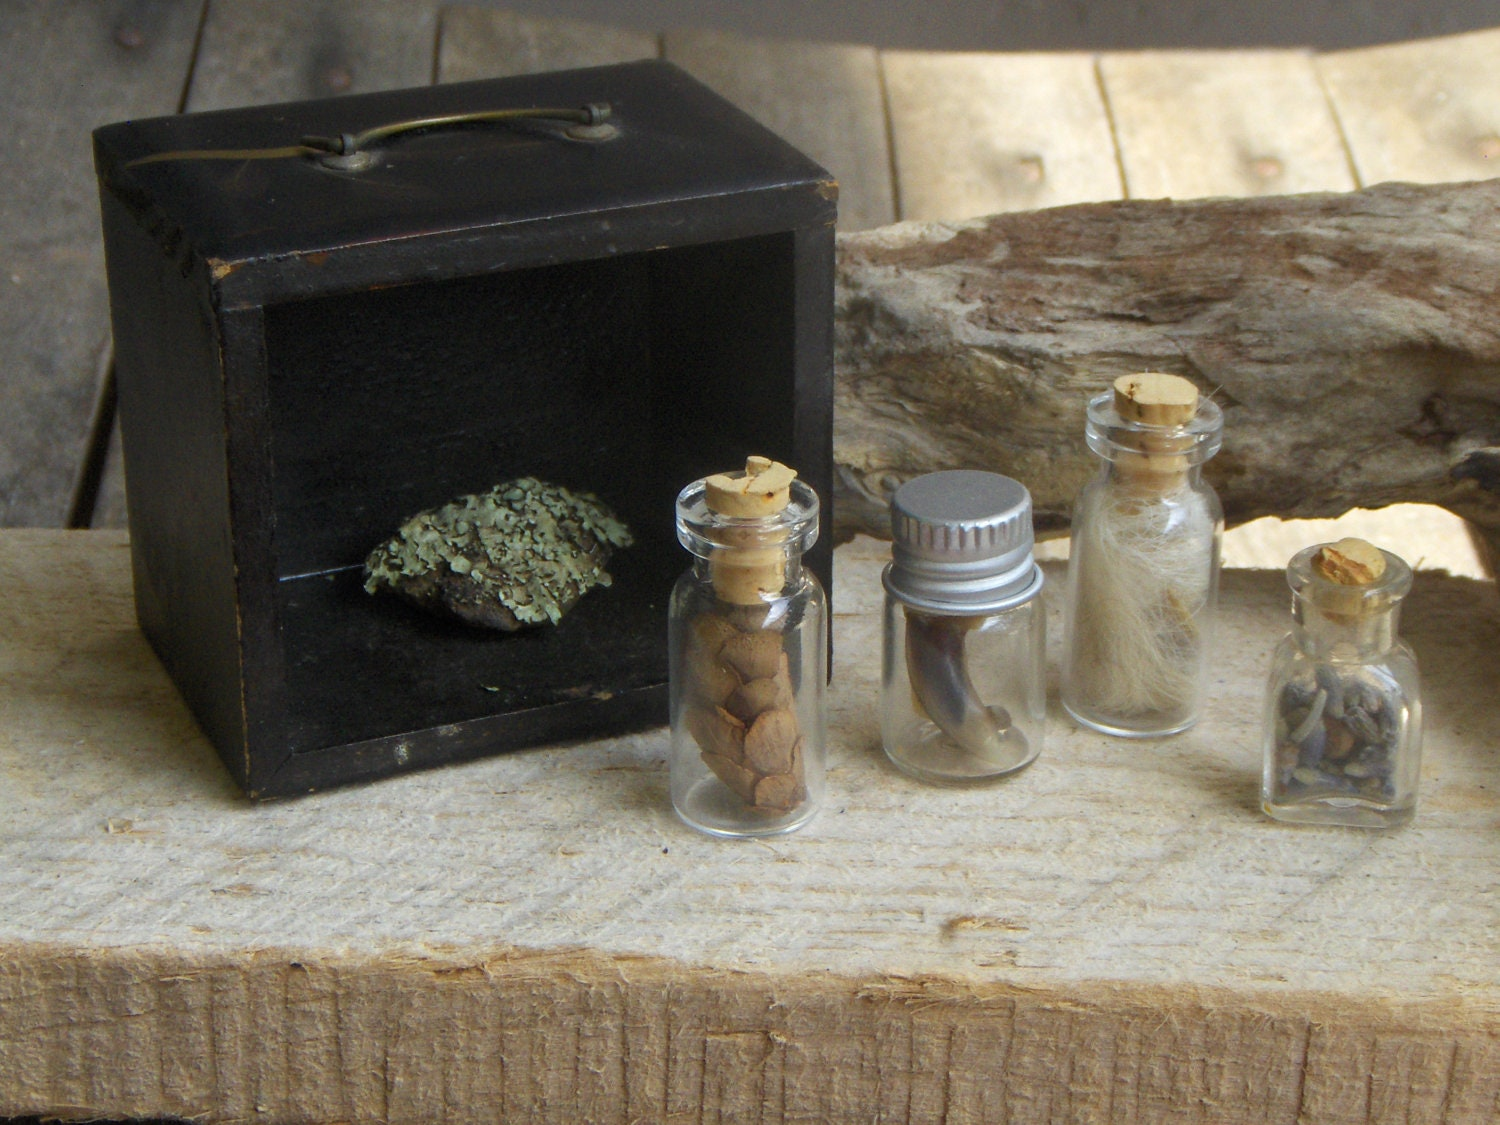 Forest Specimens No. 1 Miniature Antique wood curio box diorama. Tiny Bottles of Wolf Fur, Hemlock Pine cones, lavender buds, Fox claws